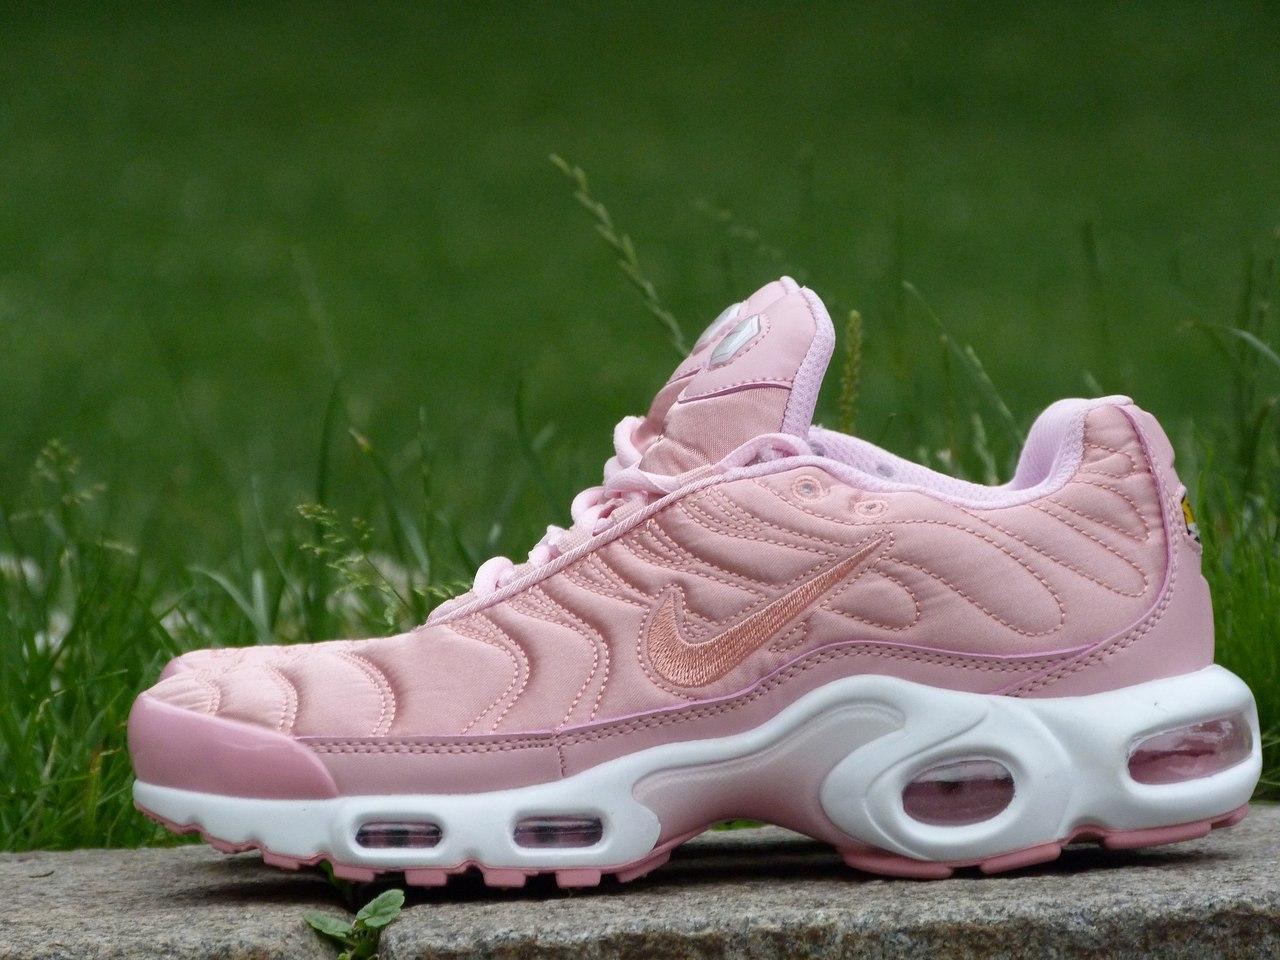 1a337296e40a Женские кроссовки Nike Air Max Tn+ Satin Pack Pink - Shoes Shop в Киеве